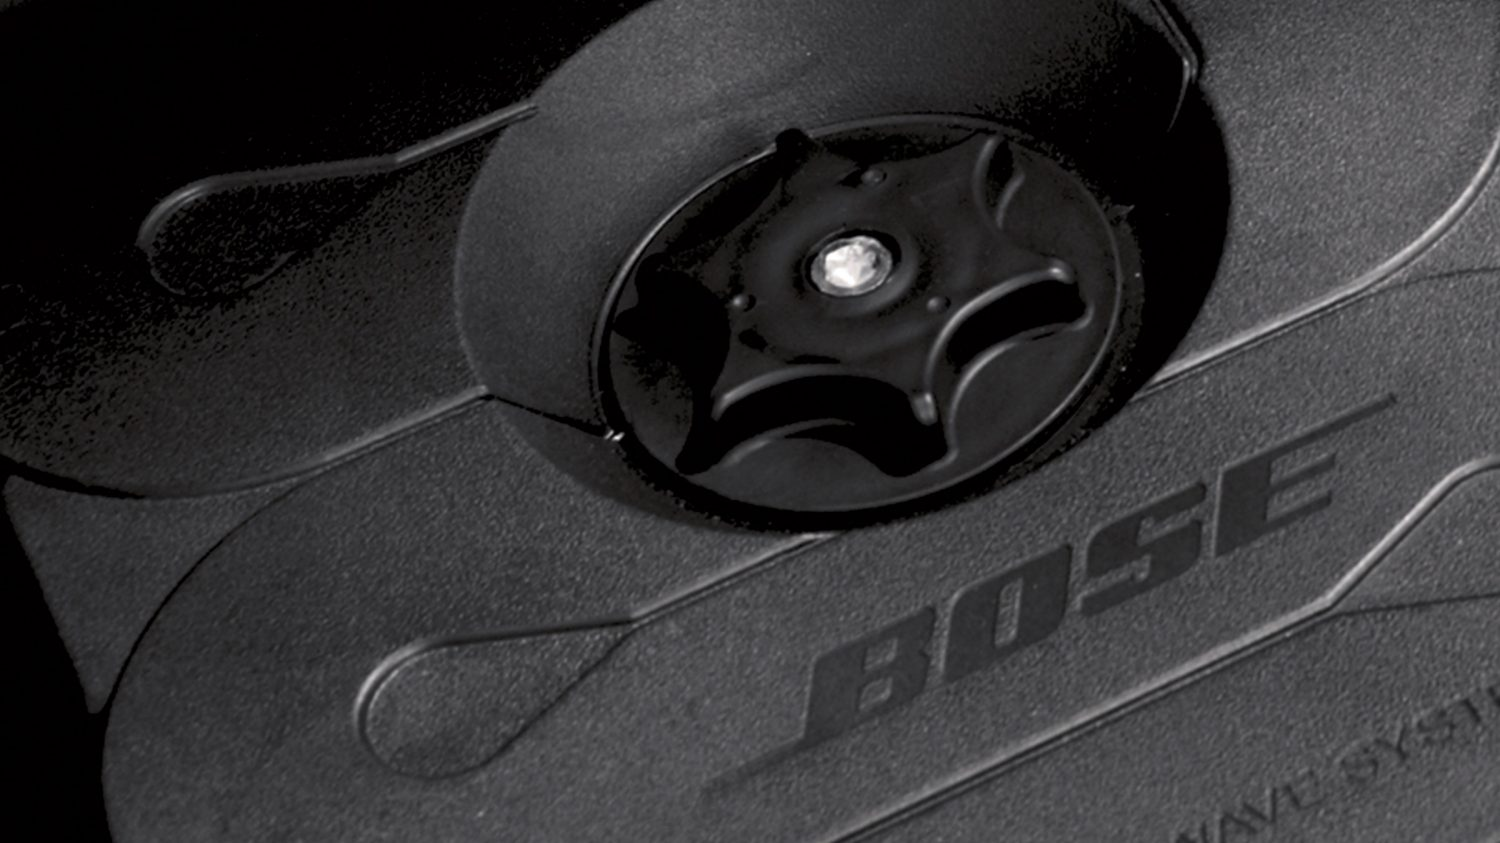 Bose audio system